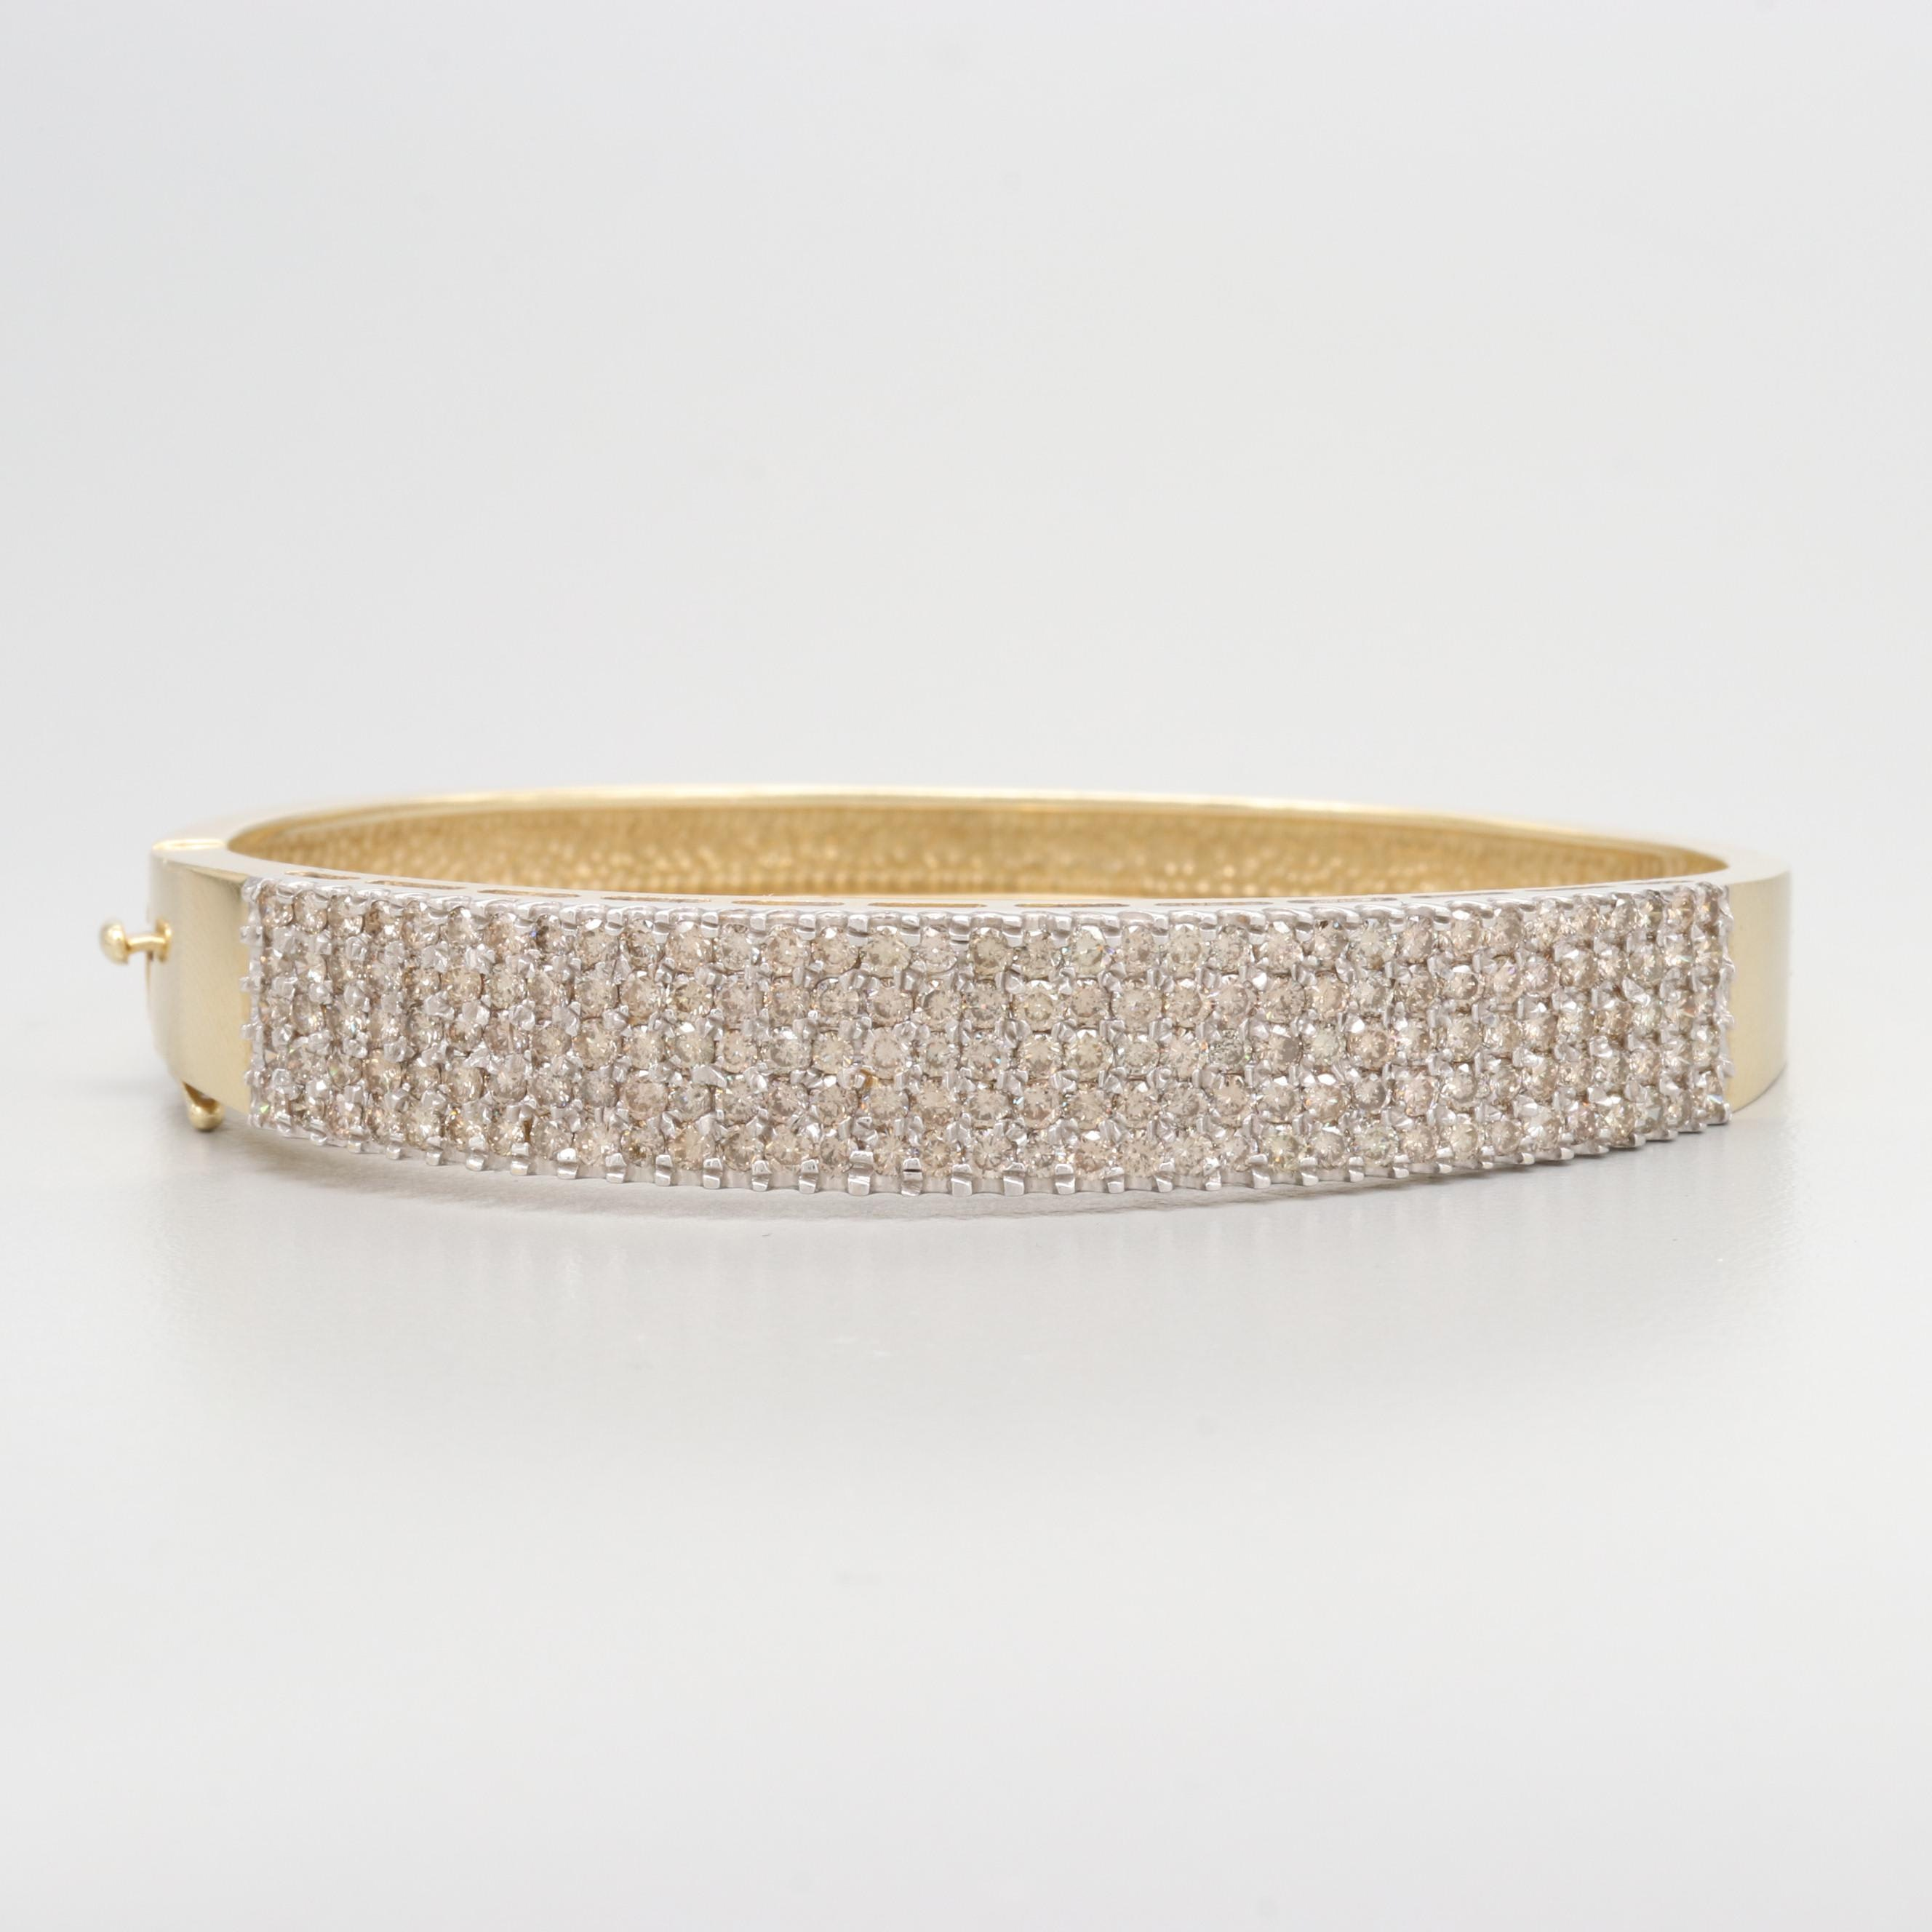 14K Yellow Gold 3.40 CTW Diamond Bracelet